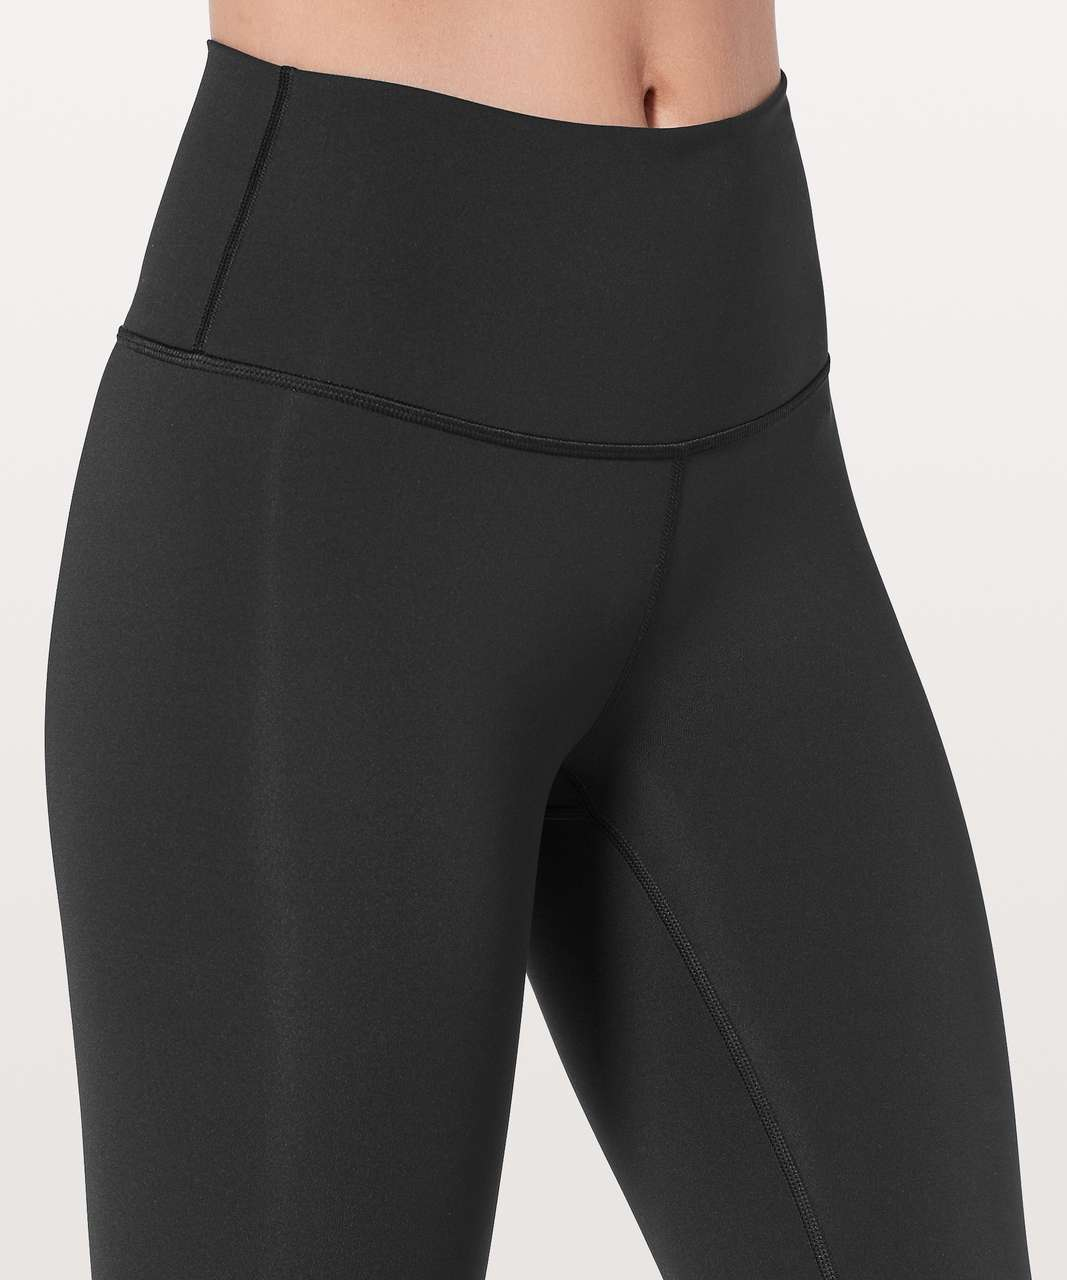 "Lululemon Wunder Under Hi-Rise 1/2 Tight 17"" - Black"